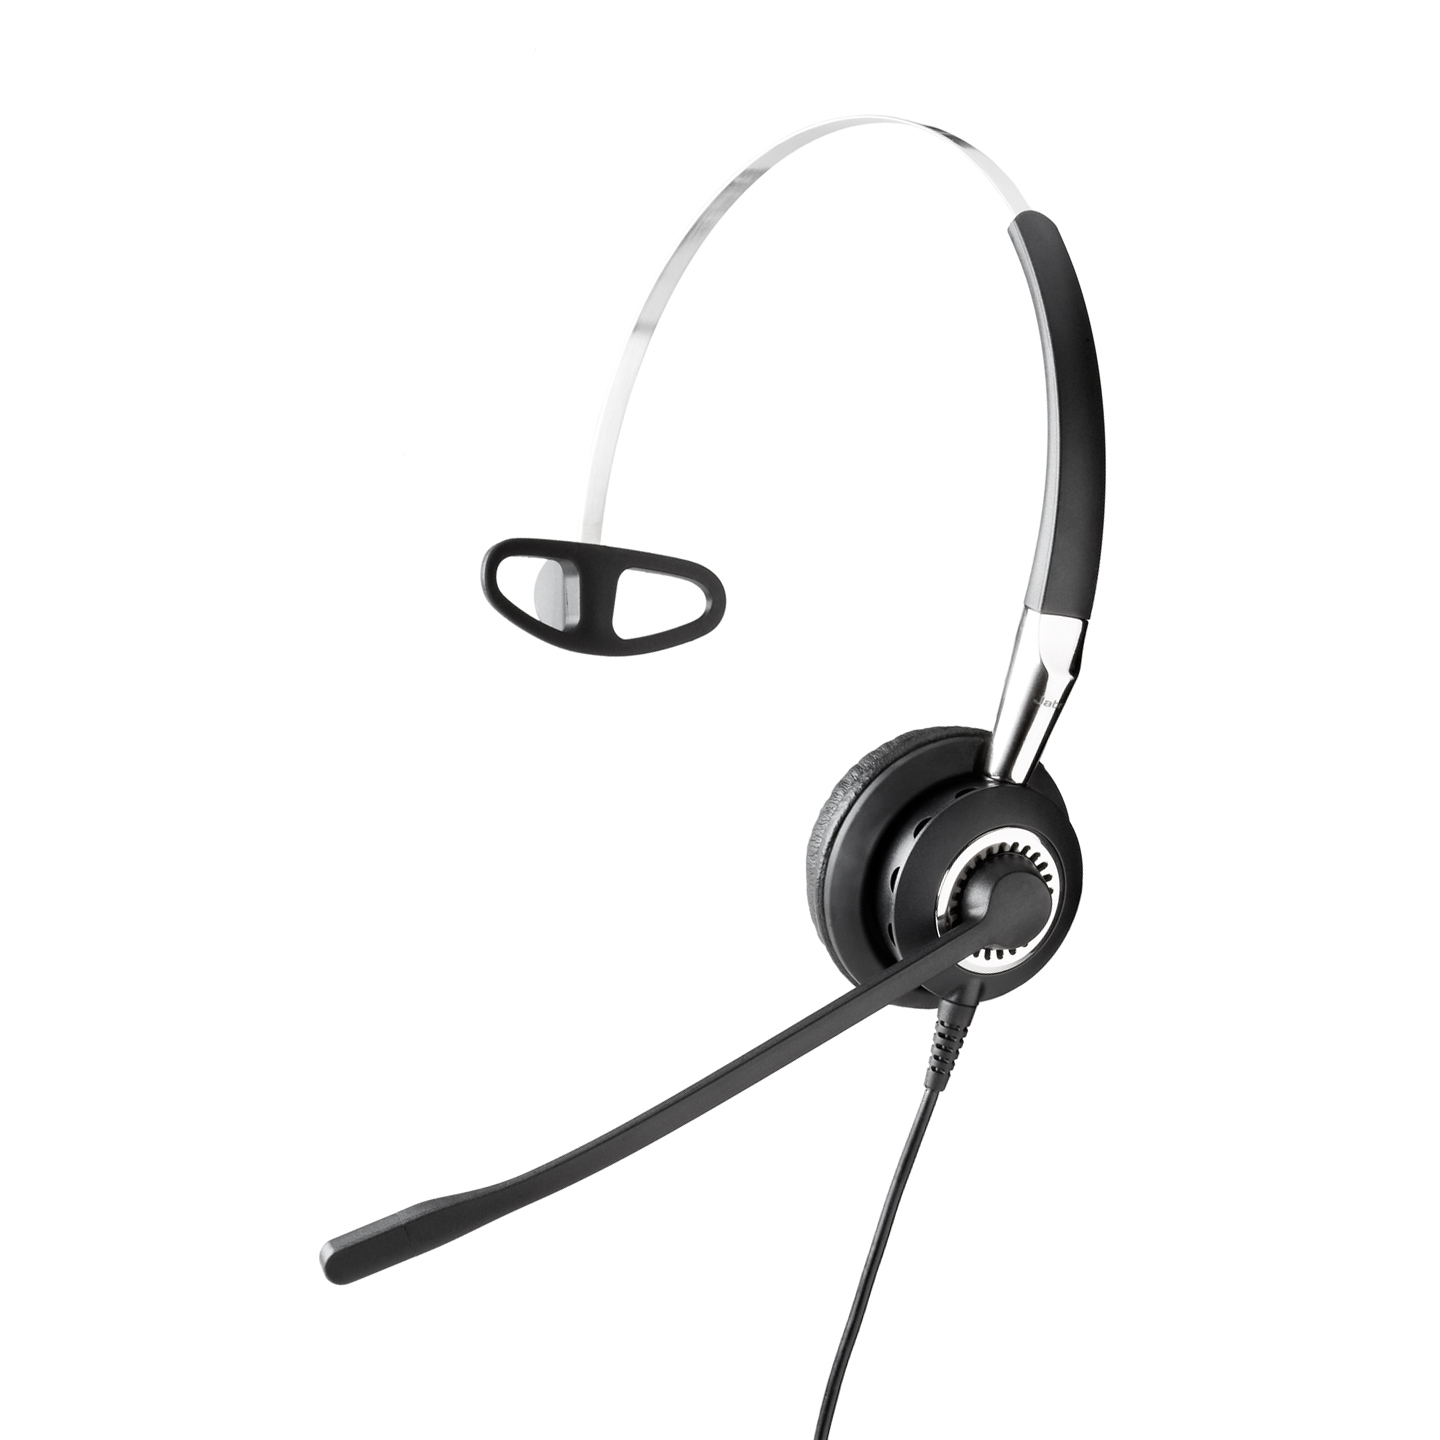 Jabra Biz 2400 Ii Headset - Jabra Usb & Deskphone Professional Headset - Jabra Usb Headphone Wiring Diagram